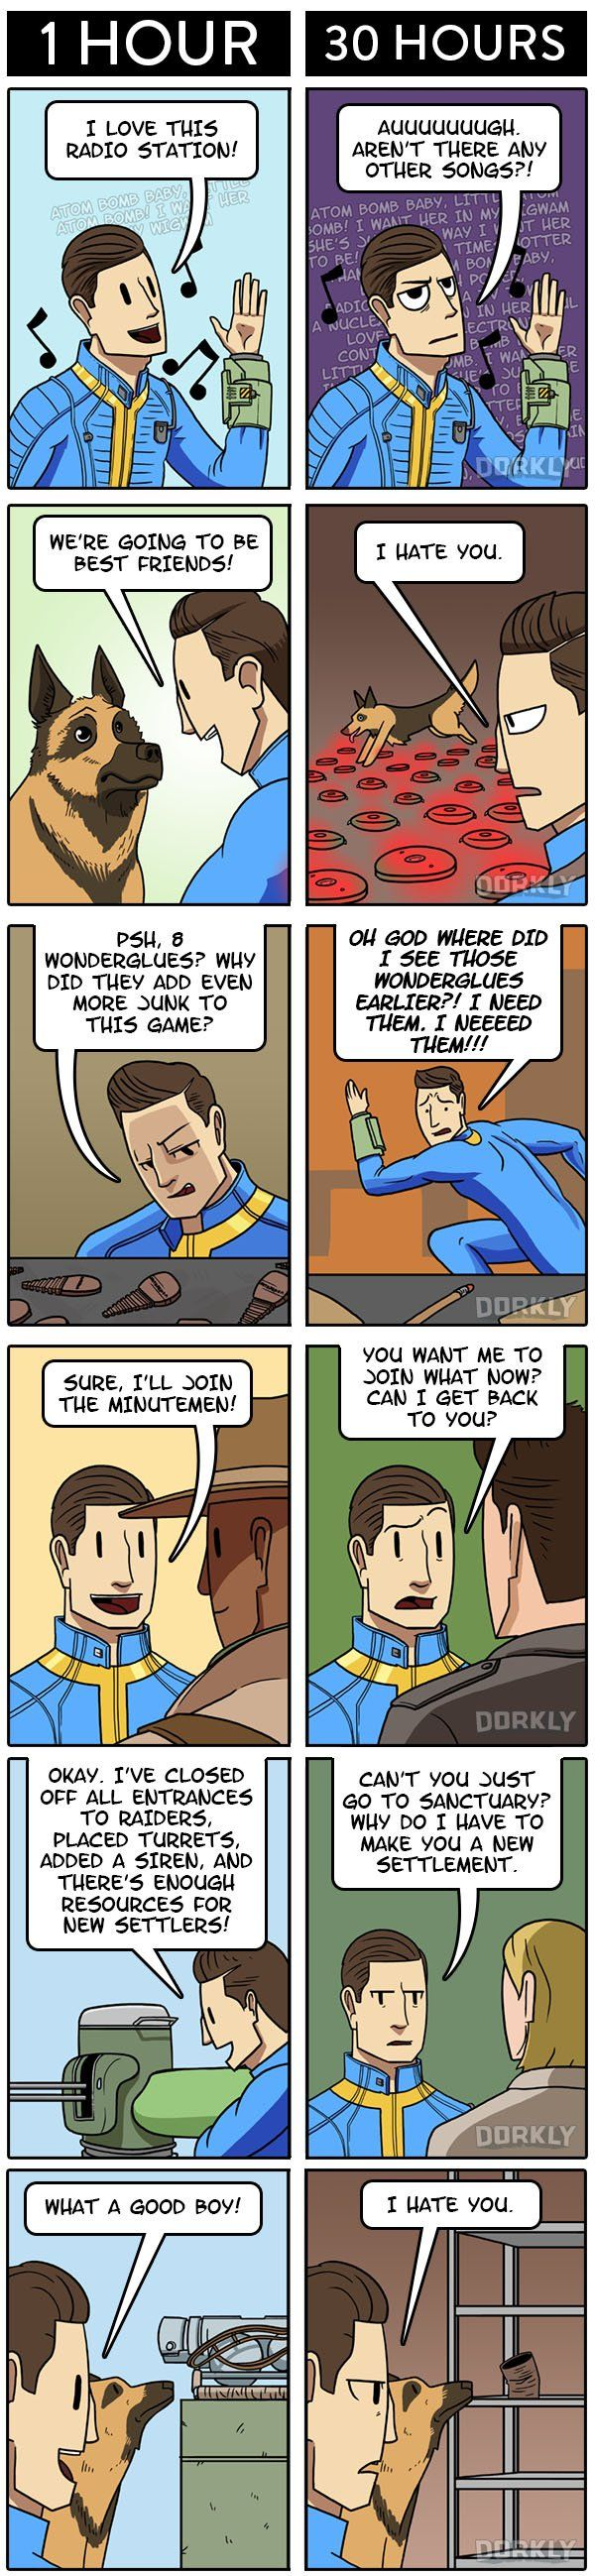 Fallout 4: 1 Hour In VS 30 Hours in